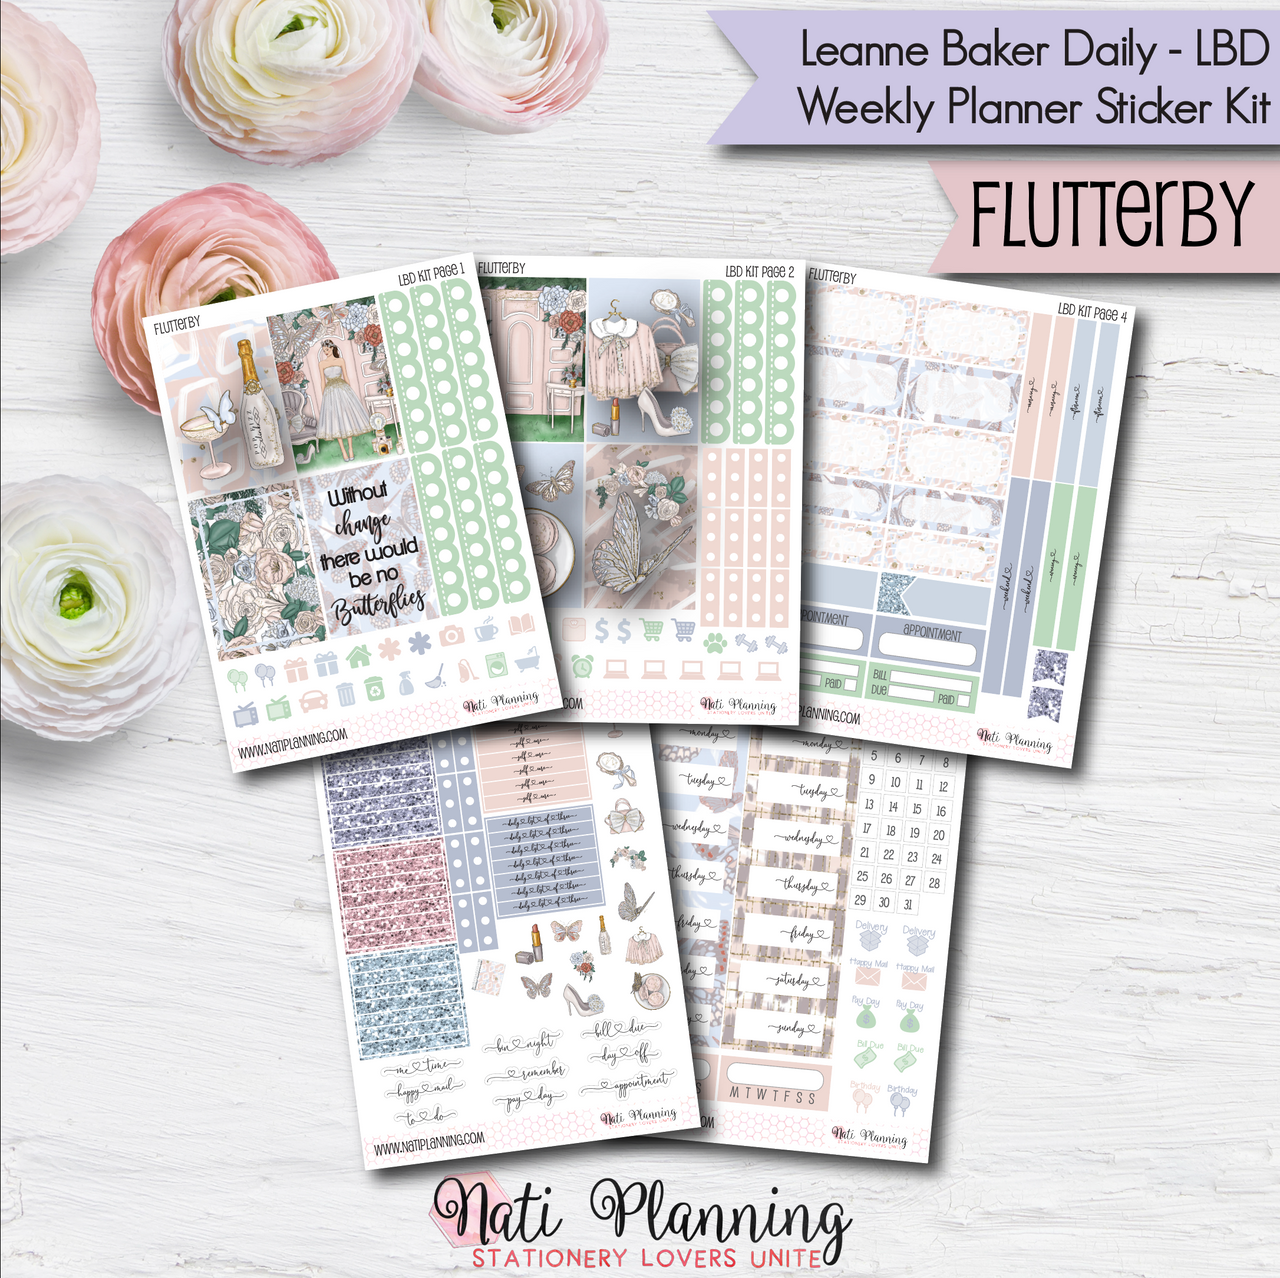 Flutterby - Weekly LBD Leanne Baker Daily Sticker Kit